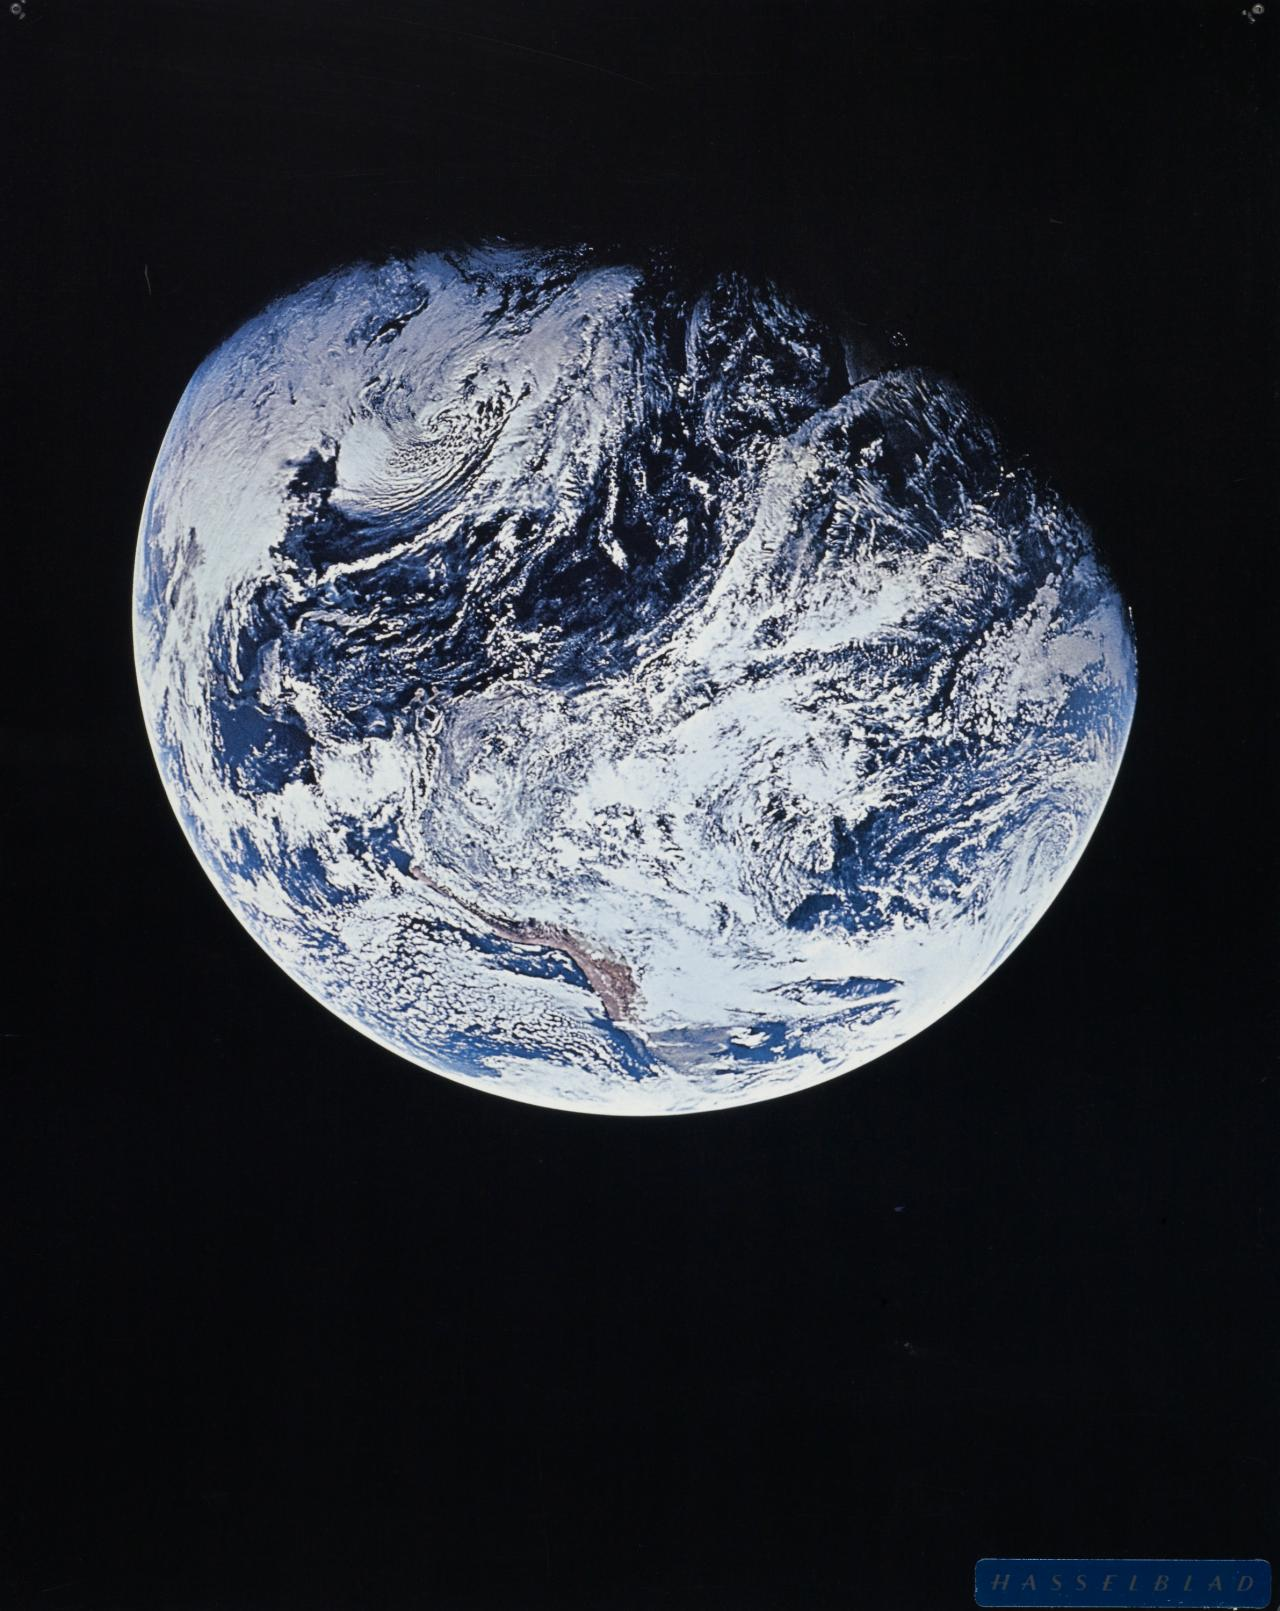 The Earth showing Southern Hemisphere